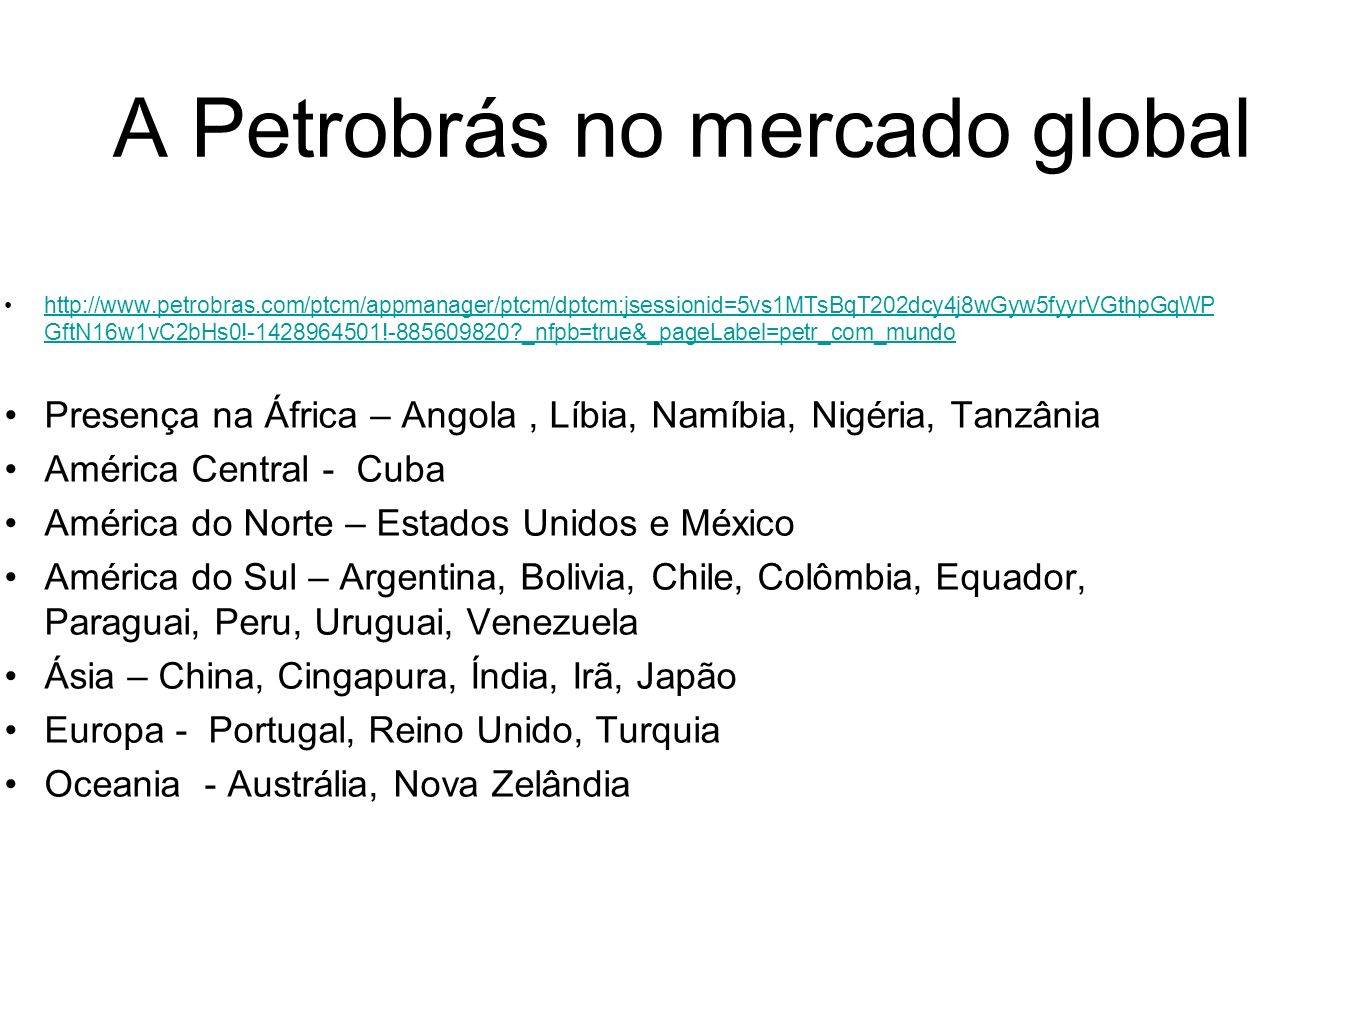 A Petrobrás no mercado global